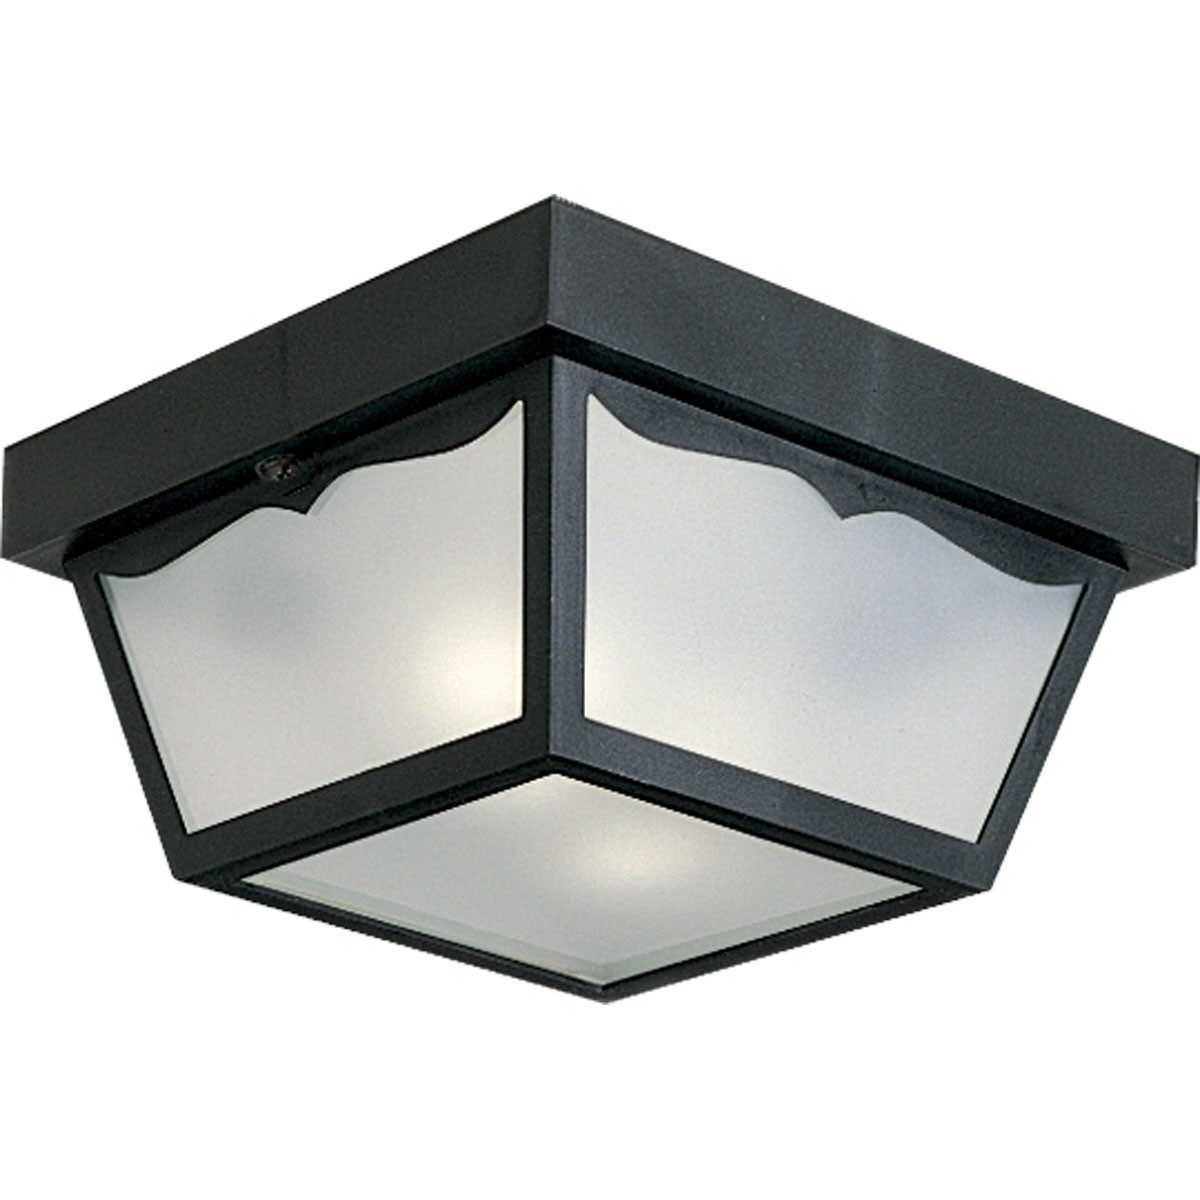 Outdoor Ceiling Mount Motion Sensor Light • Outdoor Lighting Regarding Most Popular Outdoor Ceiling Sensor Lights (View 13 of 20)